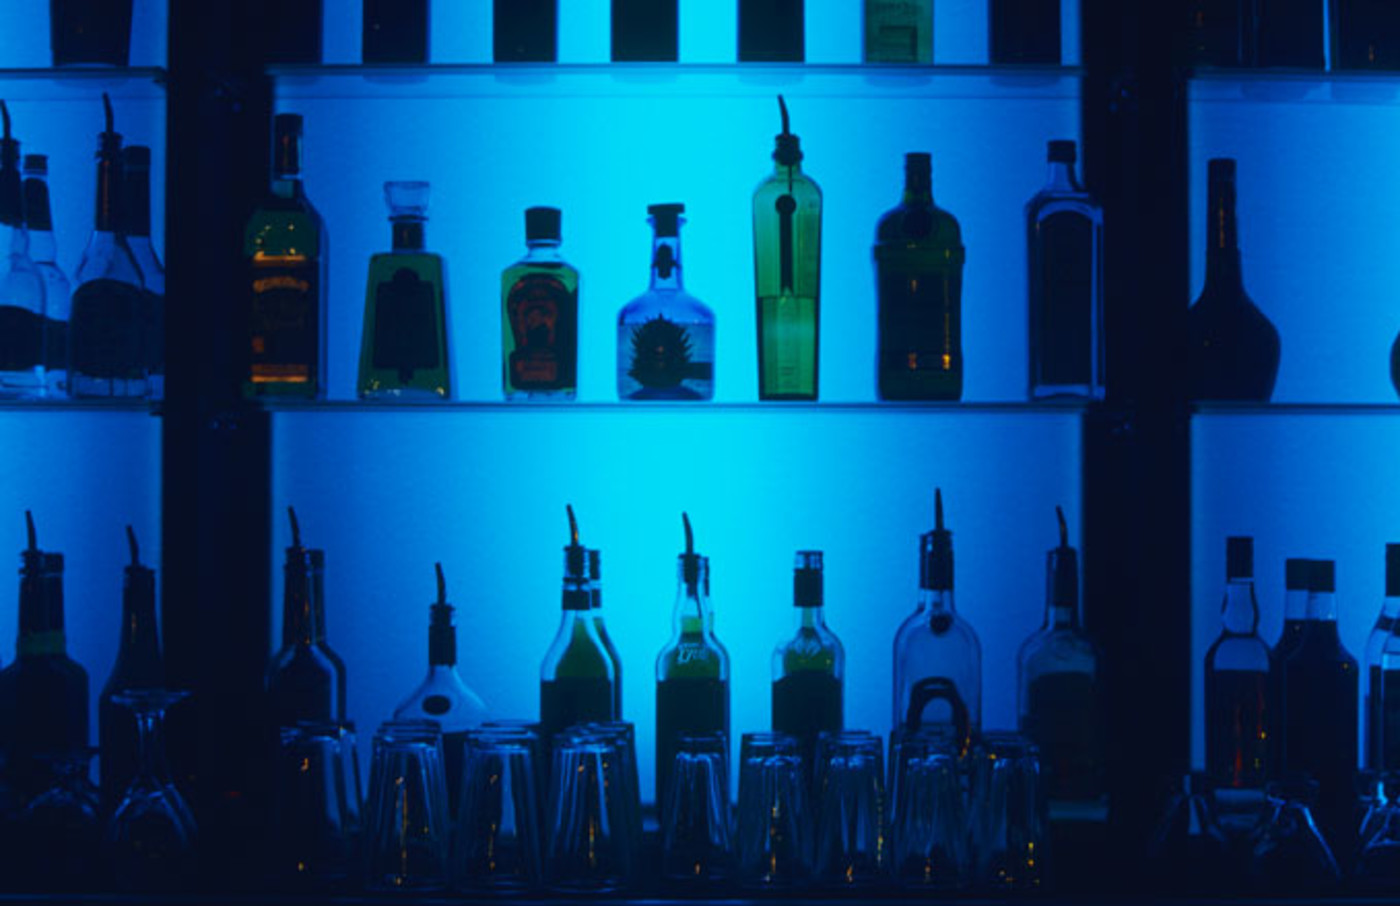 A stock photo of alcohol bottles at a bar.